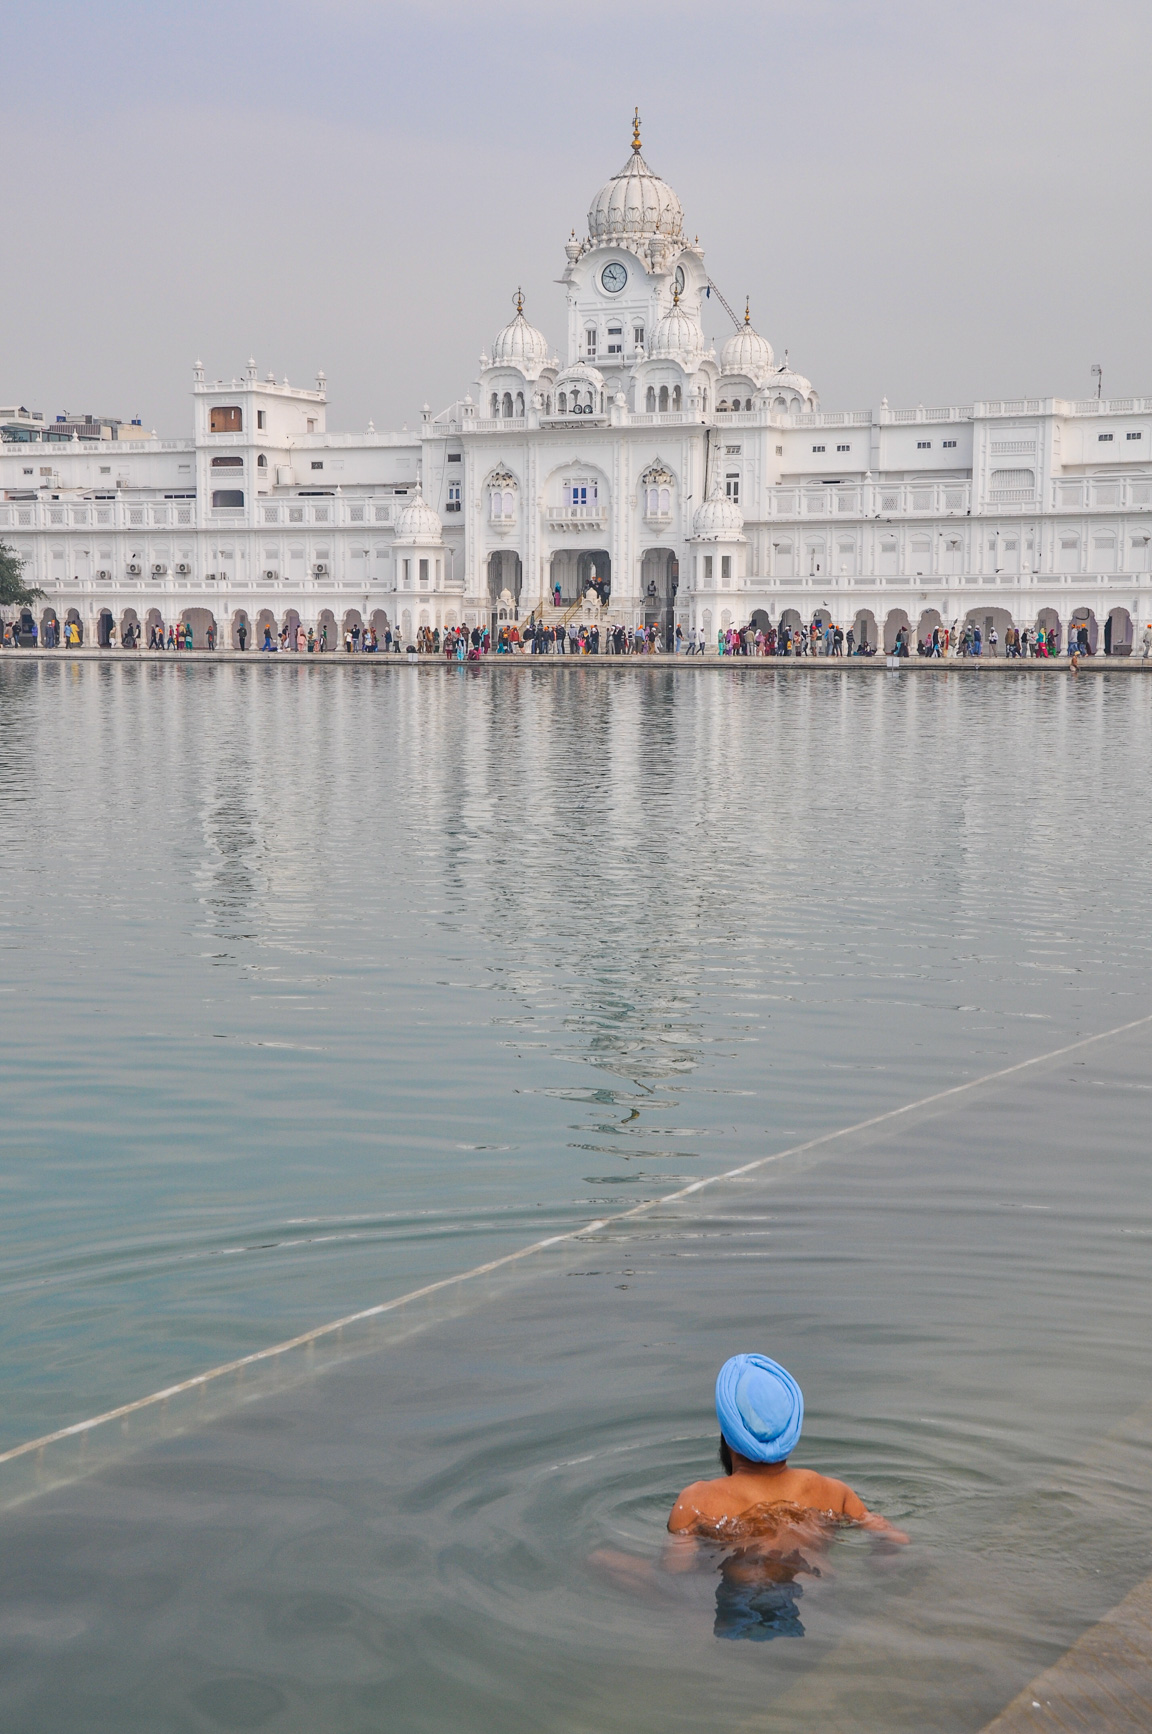 https://bubo.sk/uploads/galleries/4920/tomas_kubus_india_amritsar_dsc_0123.jpg